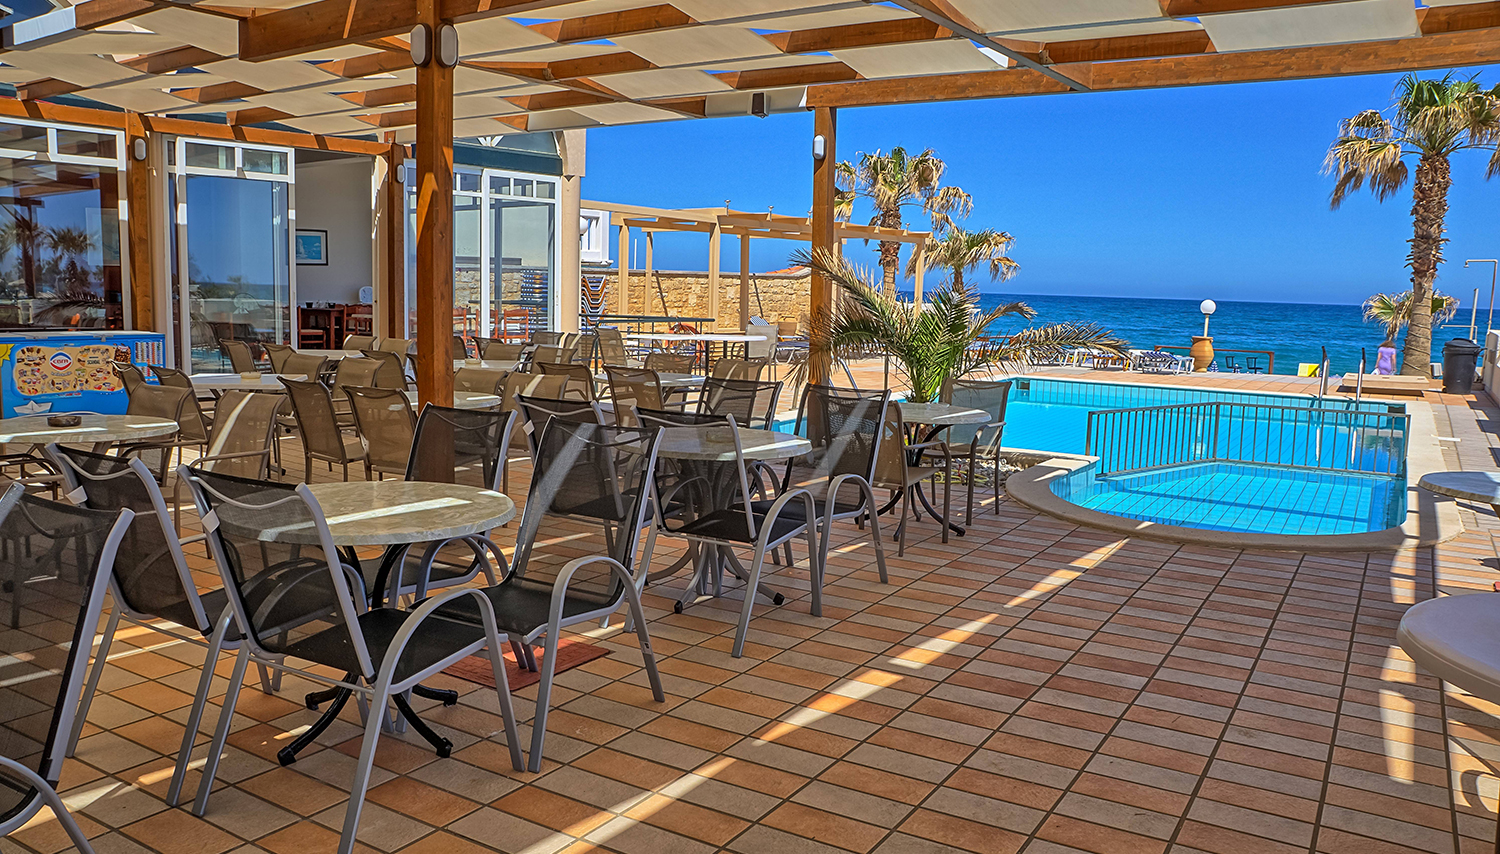 Seafront apartments hotel crete greece novaturas for Tolle hotels